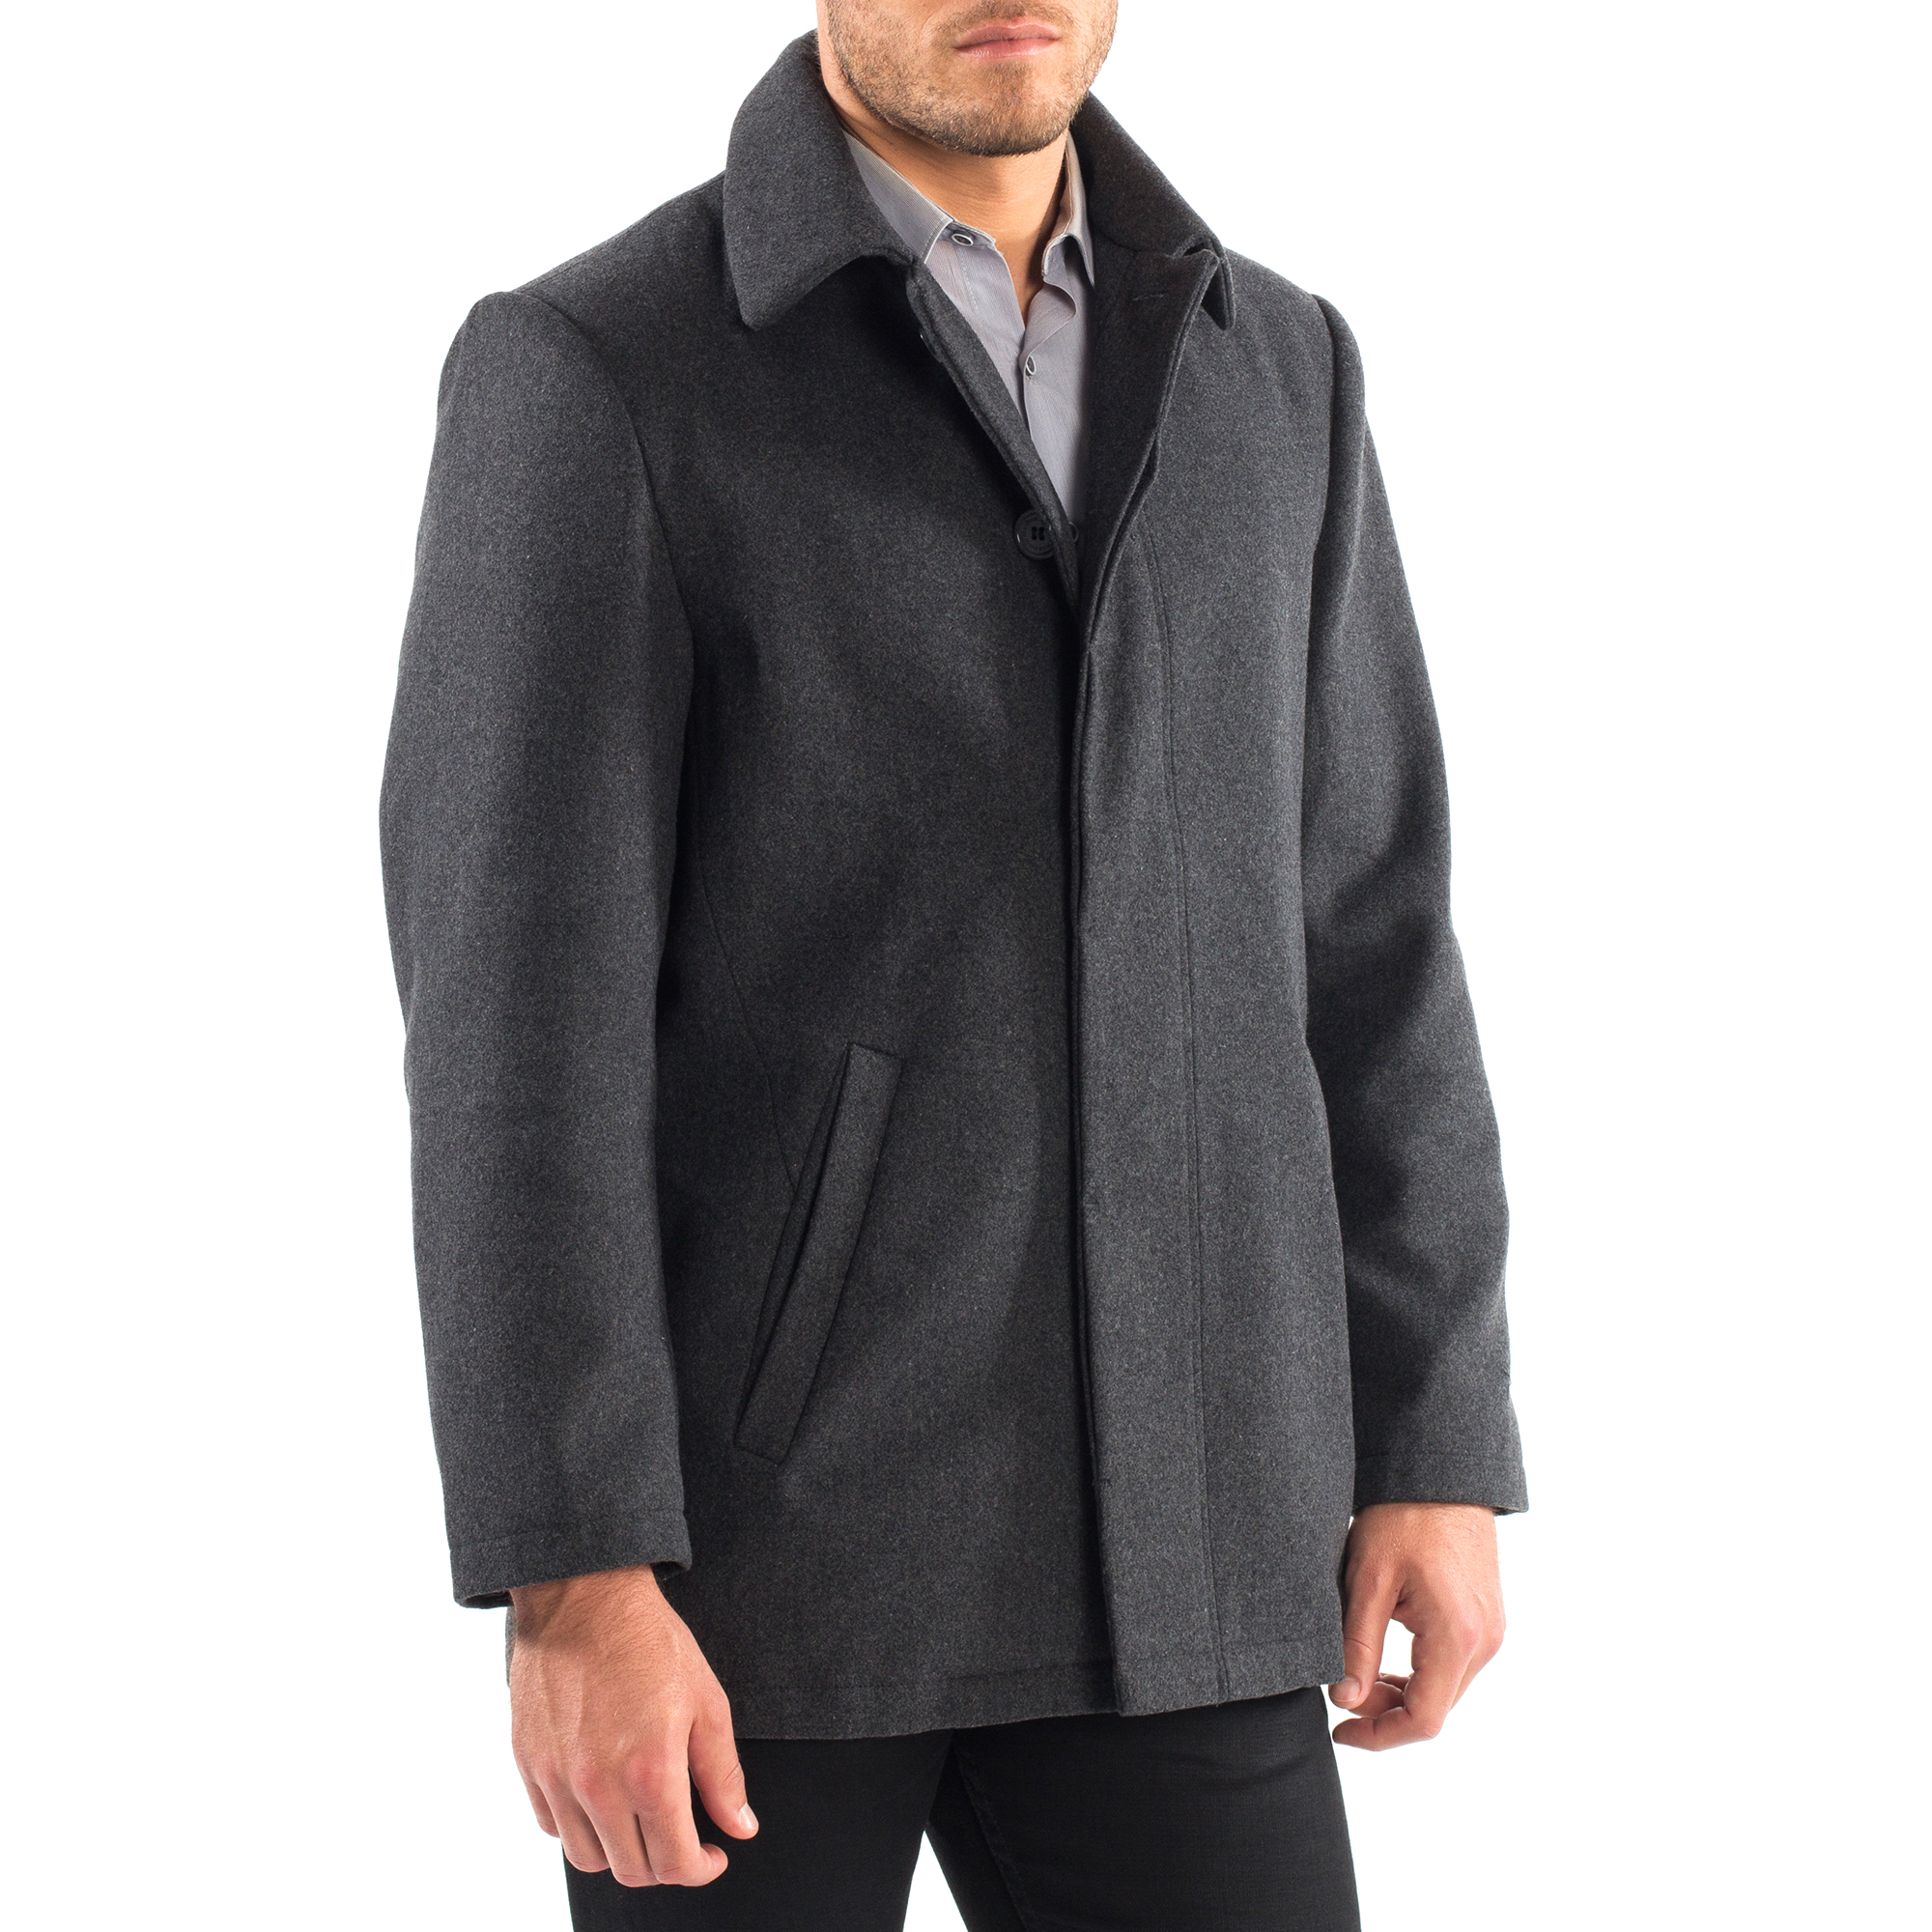 Alpine-Swiss-Vance-Mens-Jacket-Wool-Blend-Button-Up-Coat-Dress-Car-Coat-Blazer thumbnail 25